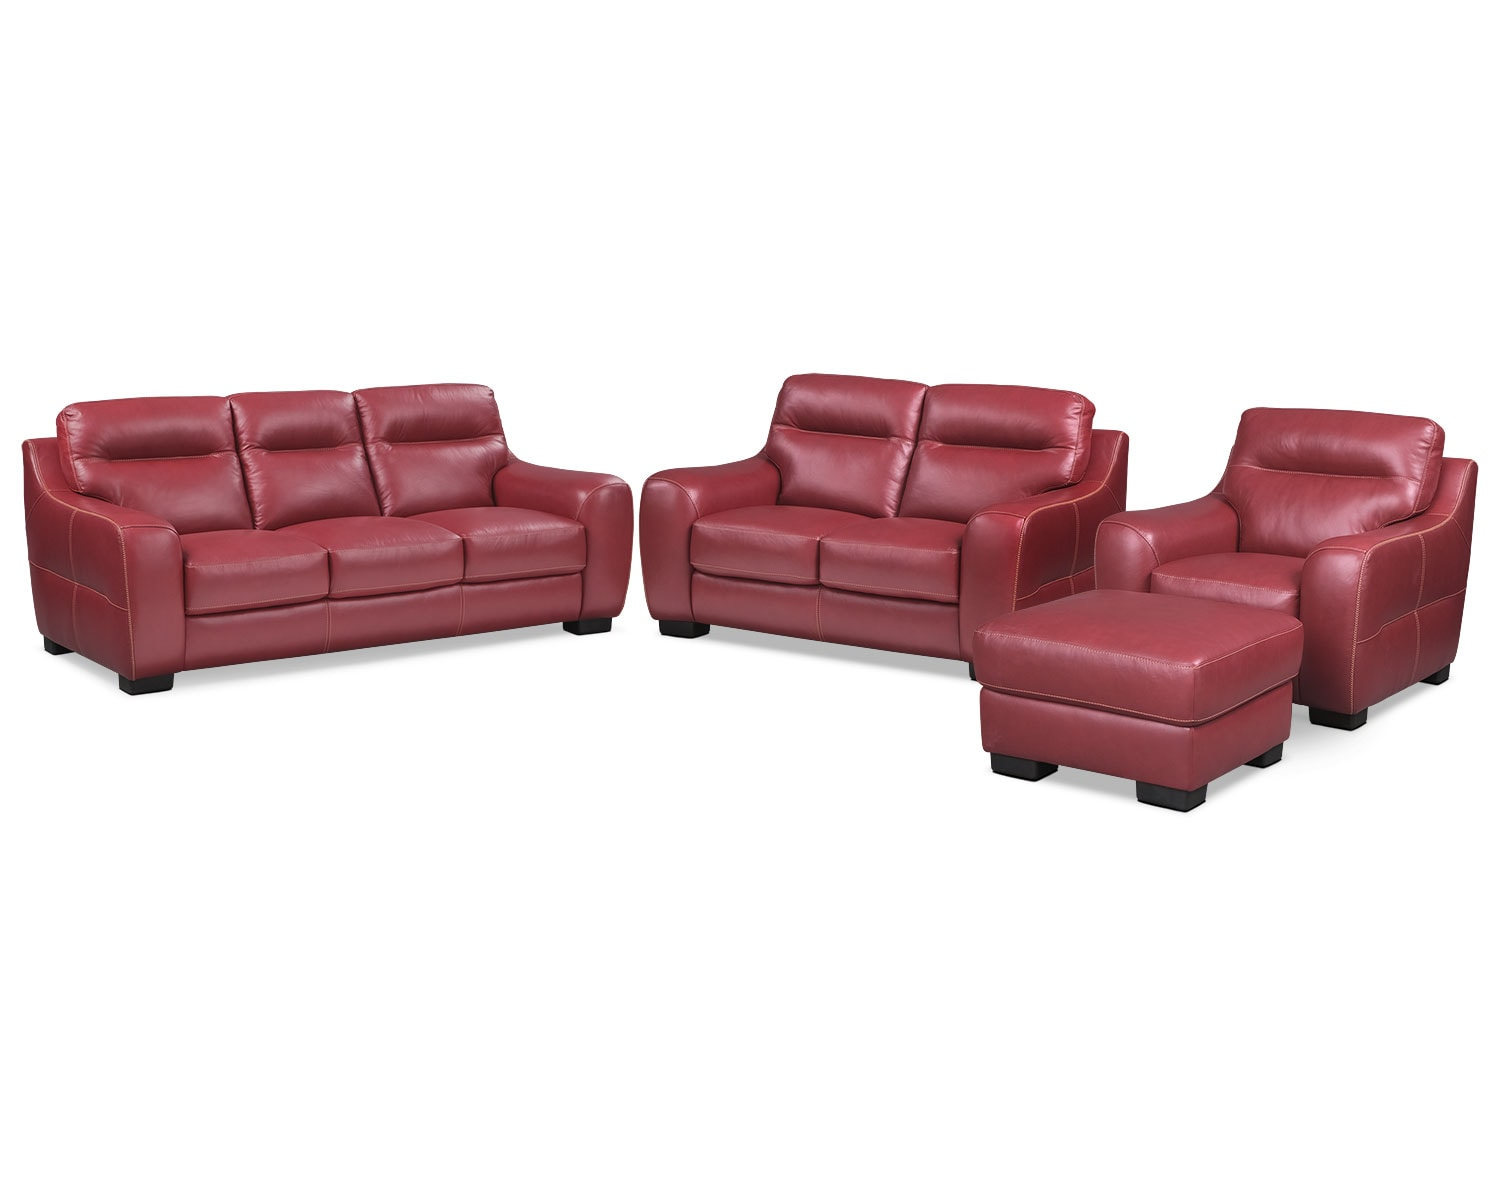 Leather furniture buying guide value city furniture for Furniture valuation guides